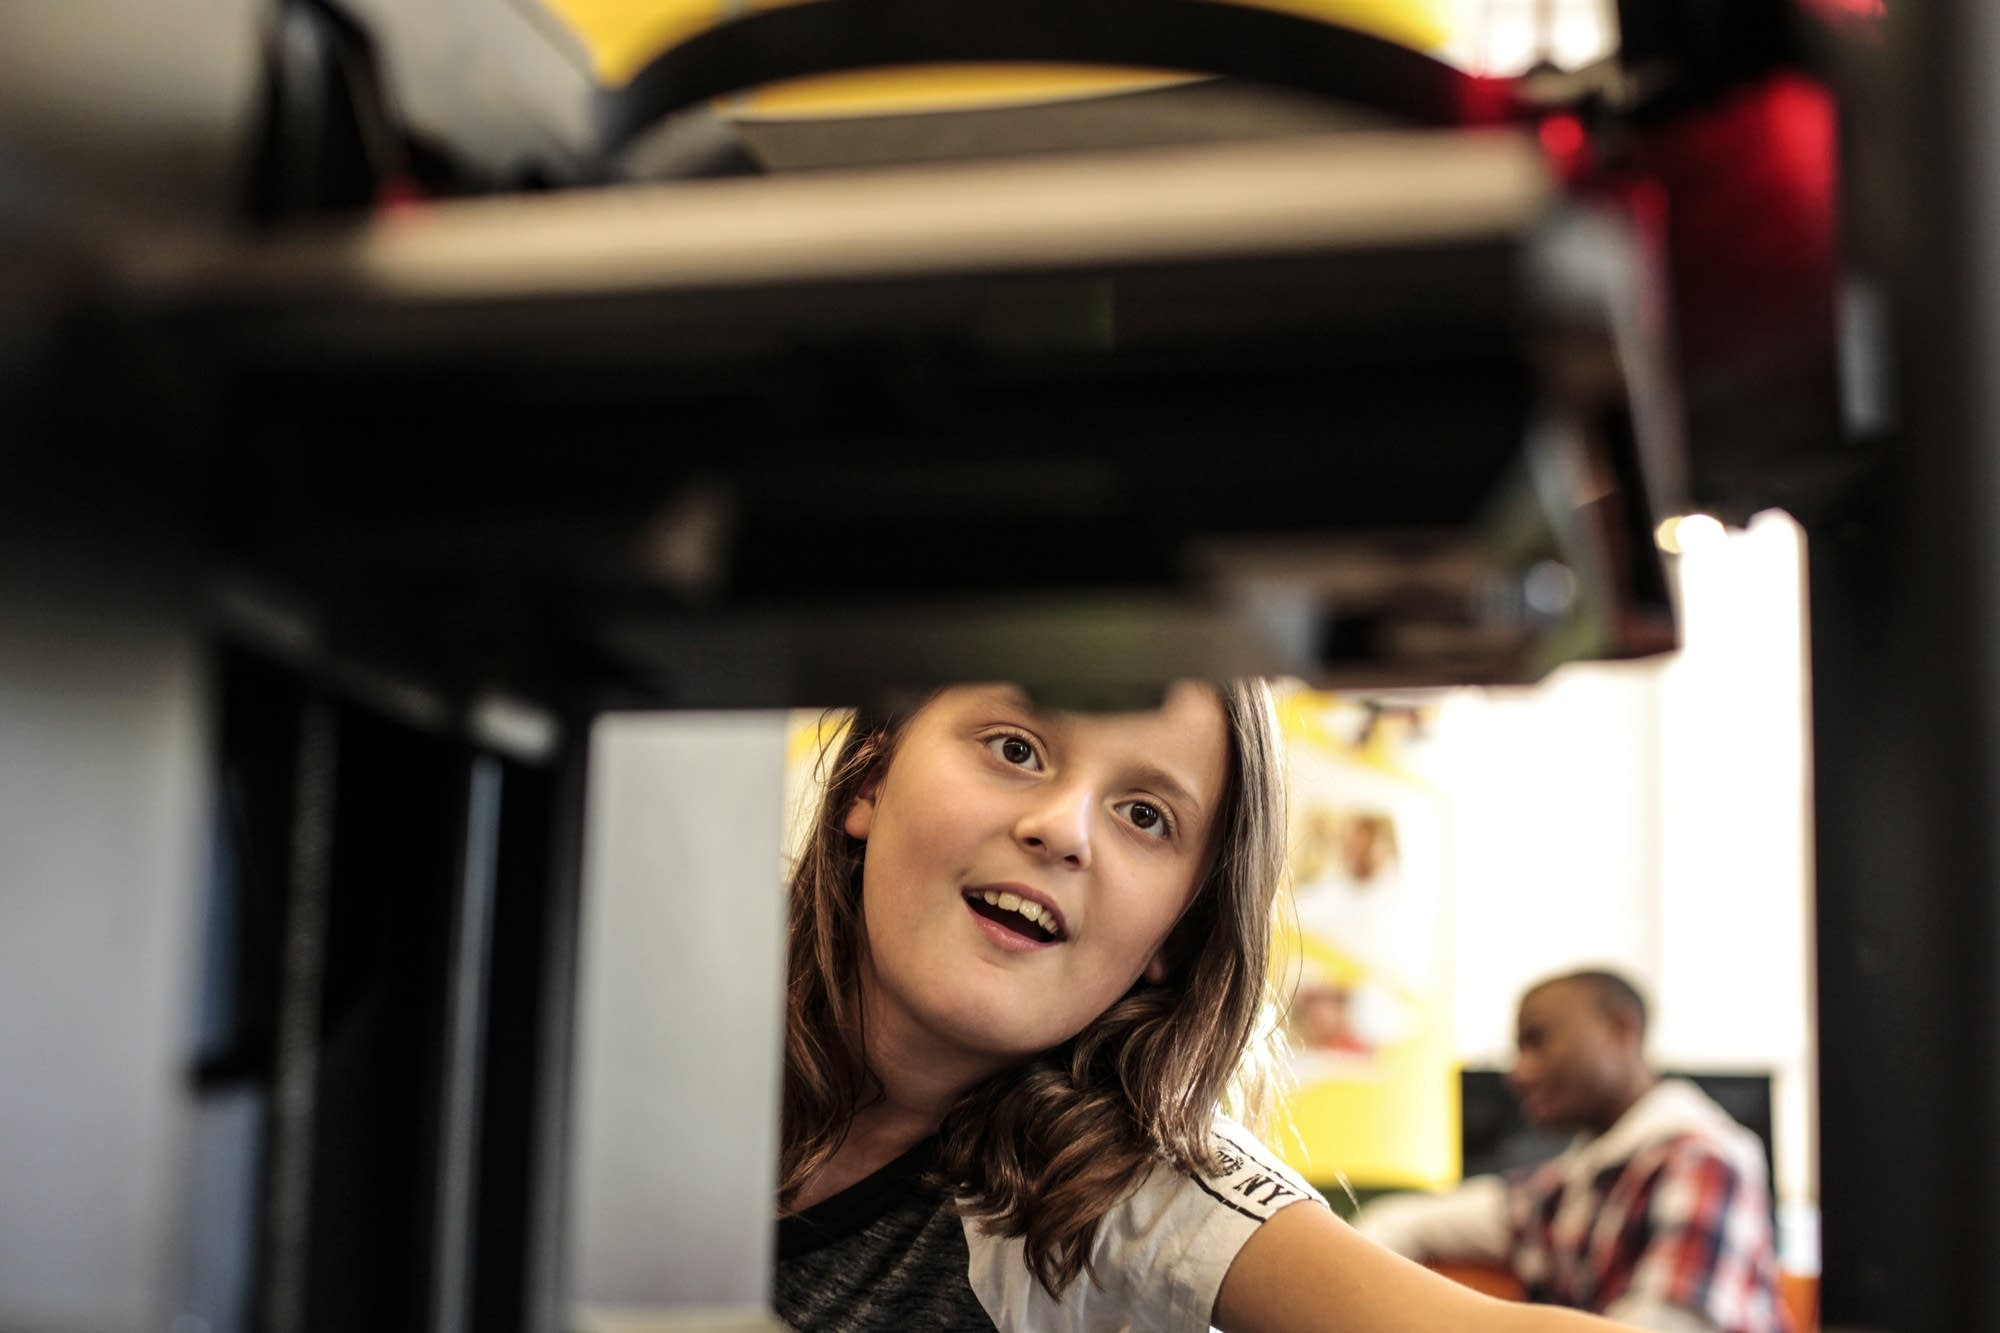 Sophia Greiner is fascinated by the 3-D printer.